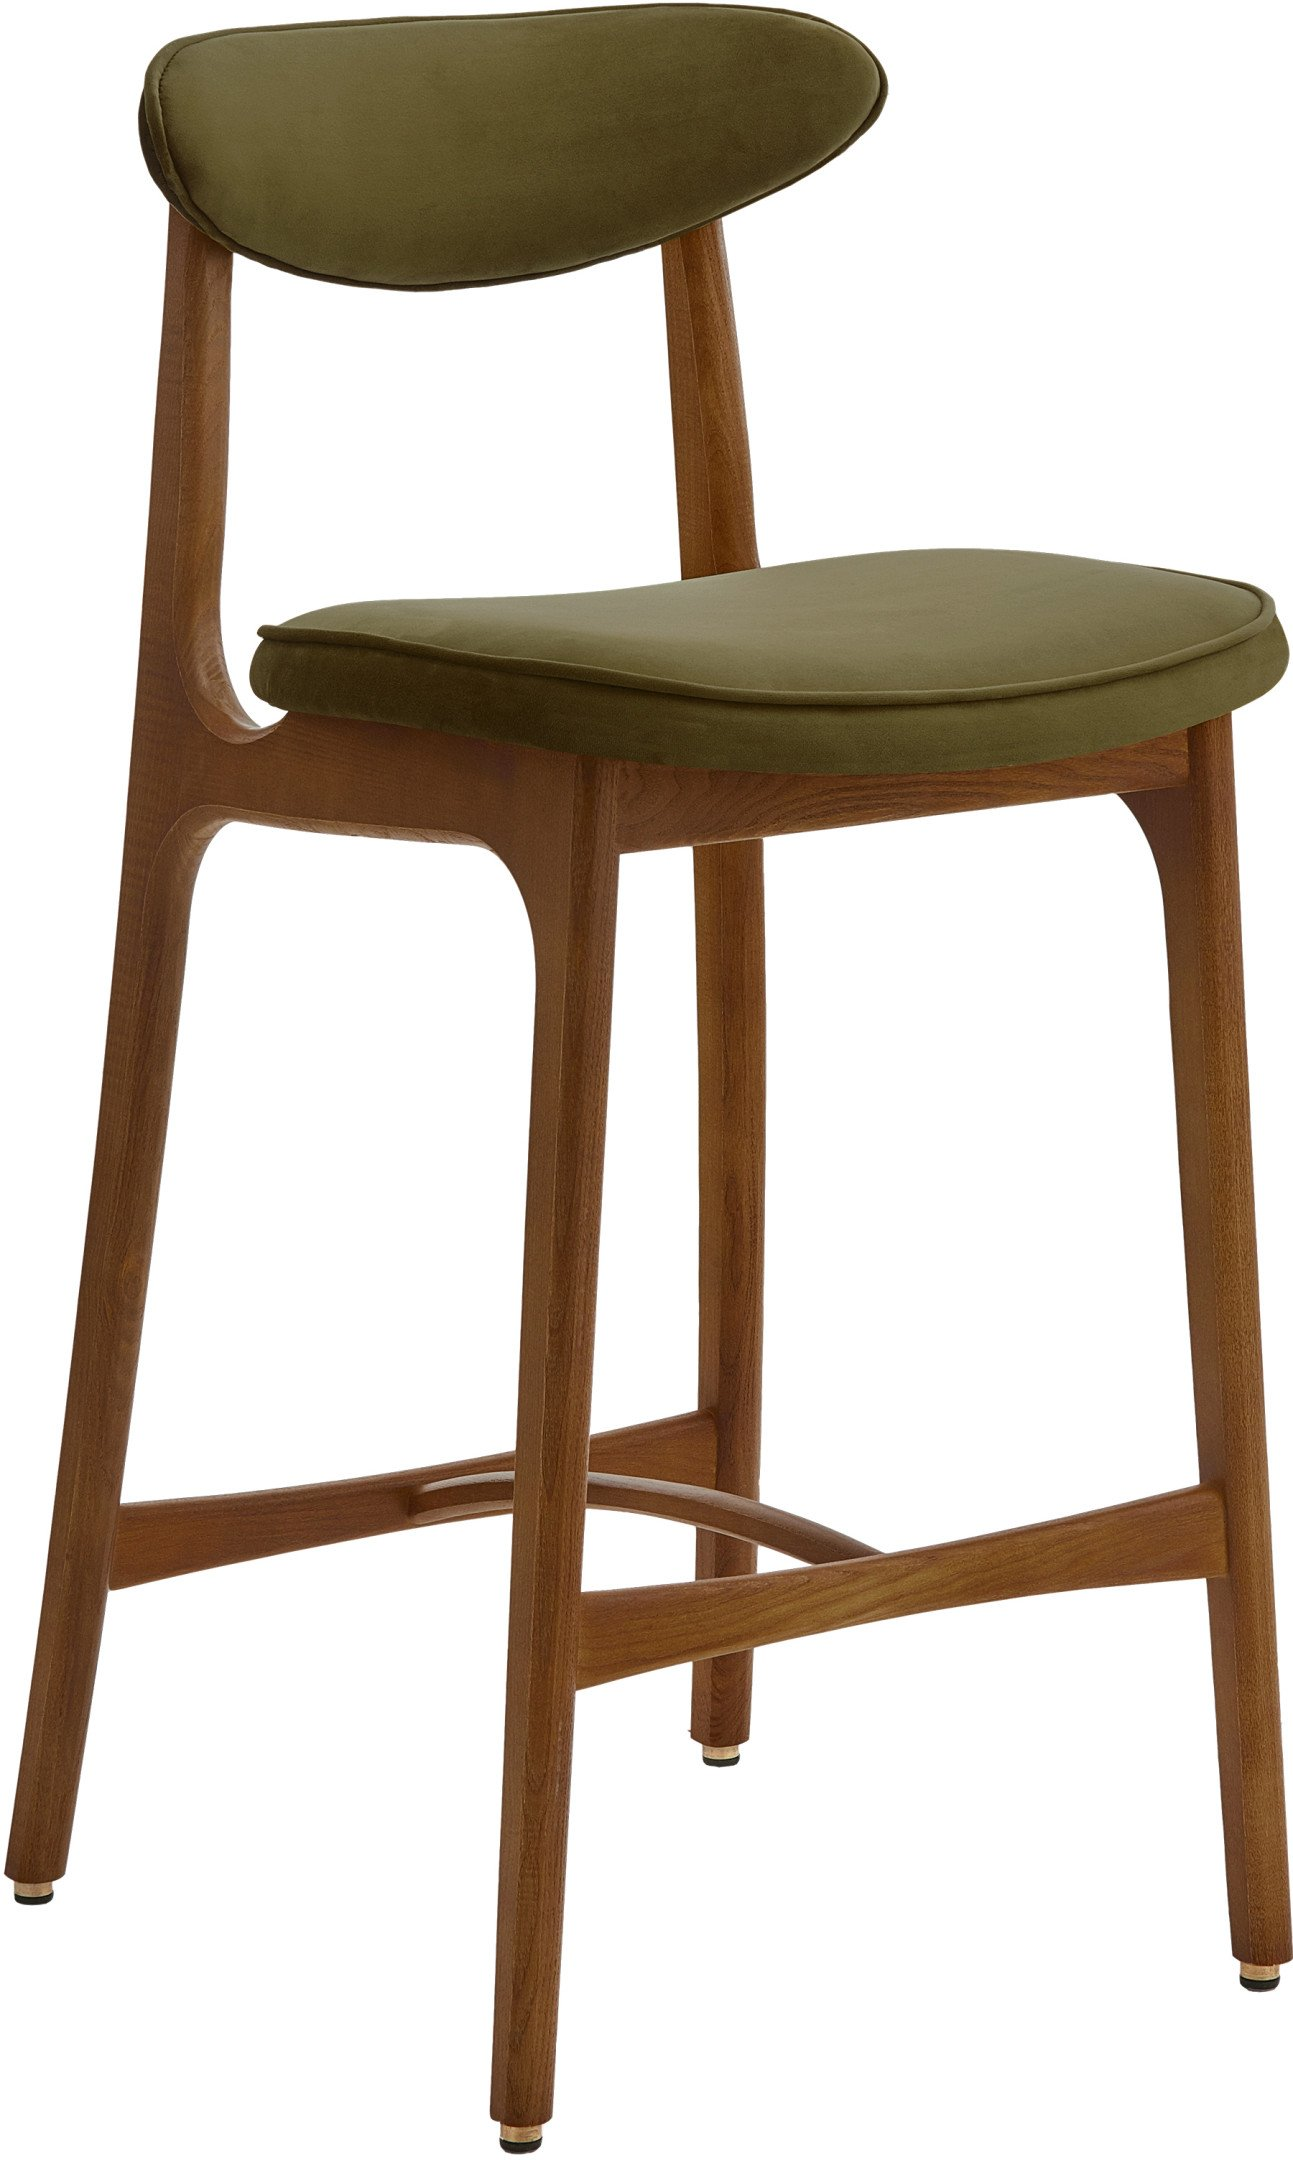 200-190 Bar Stool 65 Chair, Velvet Olive, 366 Concept